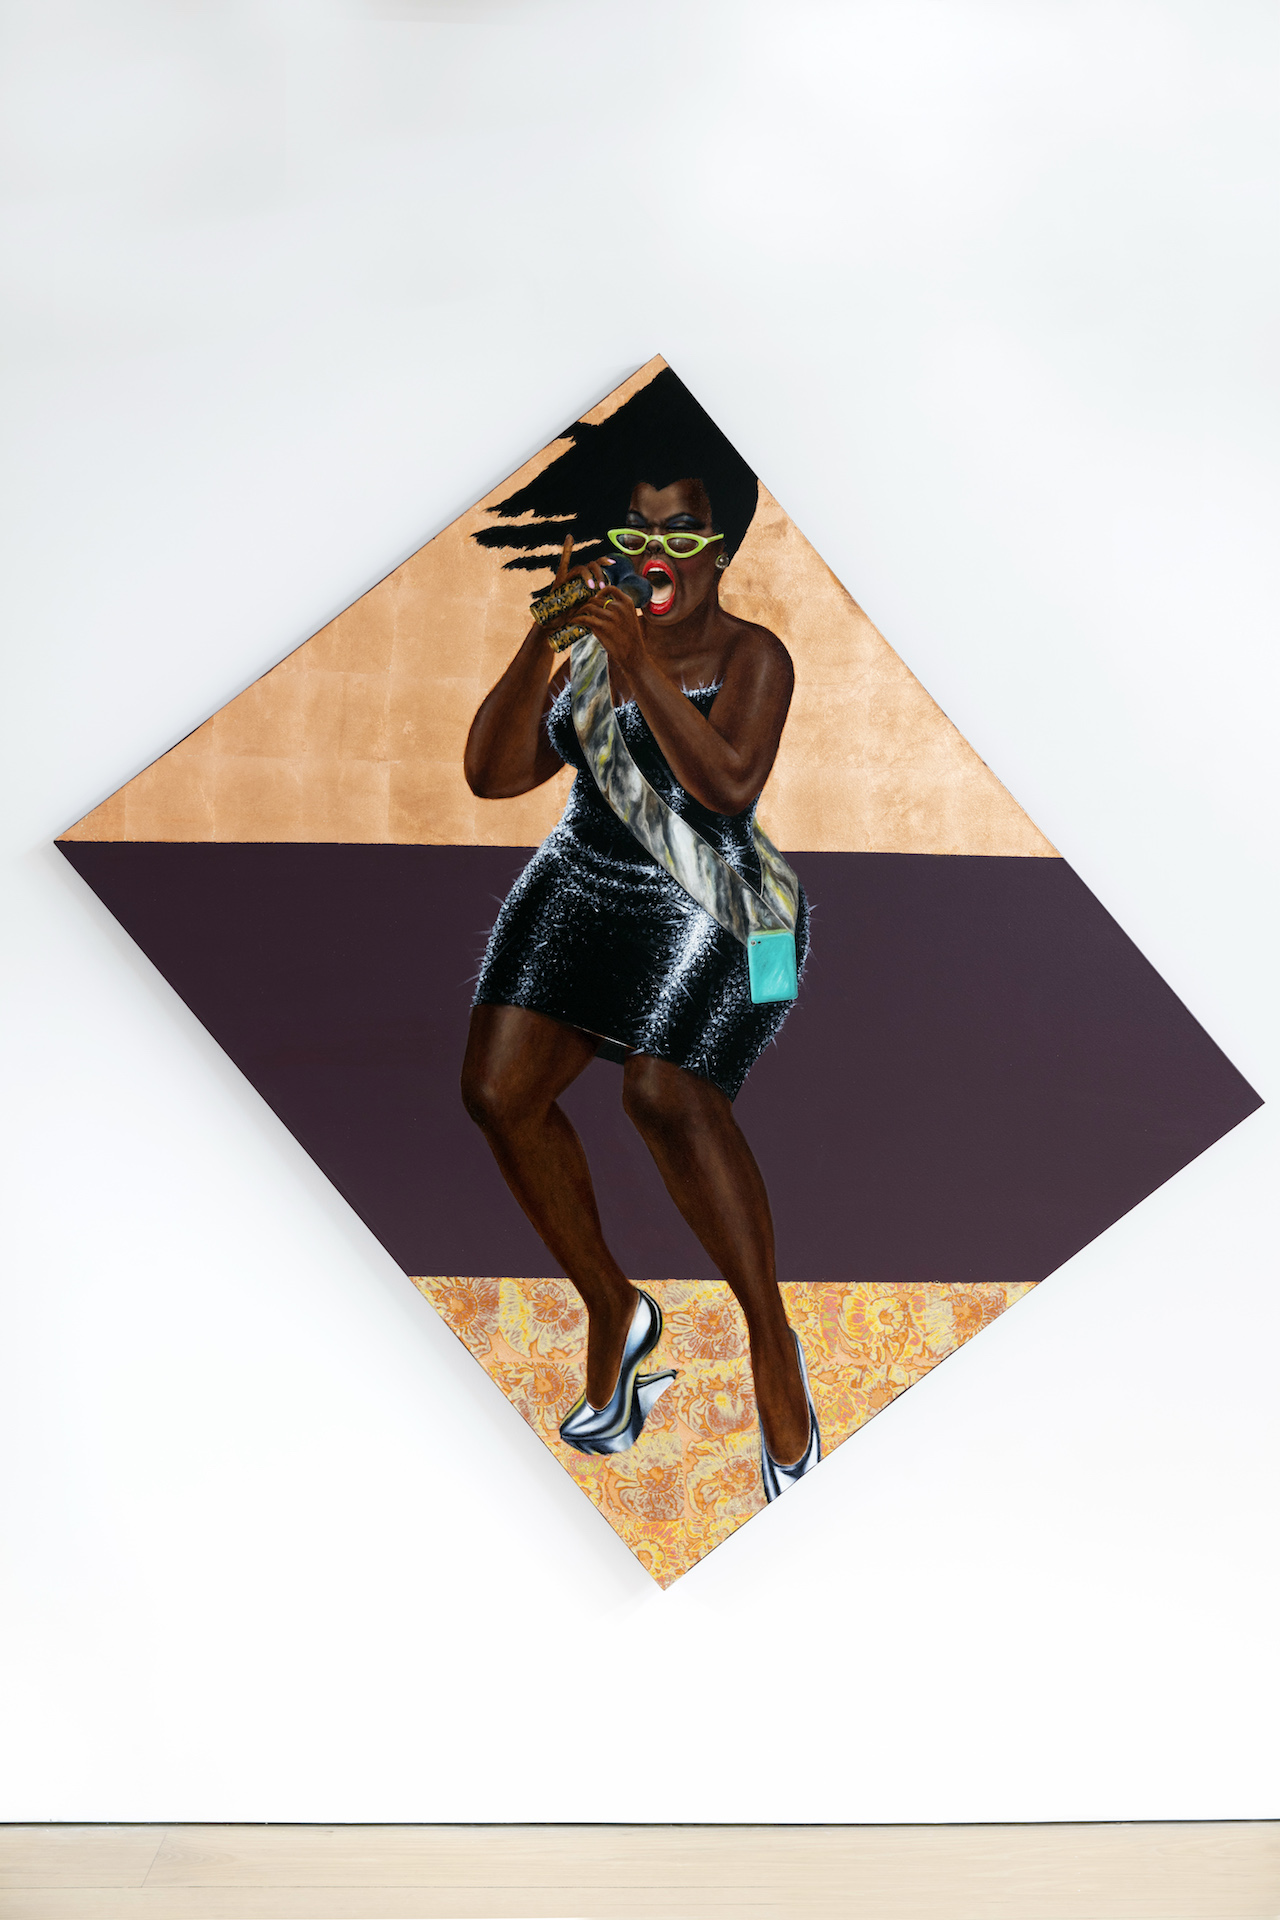 """Barkley L. Hendricks, """"Anthem"""" (2015), mixed media including copper leaf, combination leaf, oil, and acrylic on canvas, 75 x 77 in (©Barkley L. Hendricks, courtesy of the artist and Jack Shainman Gallery, New York)"""